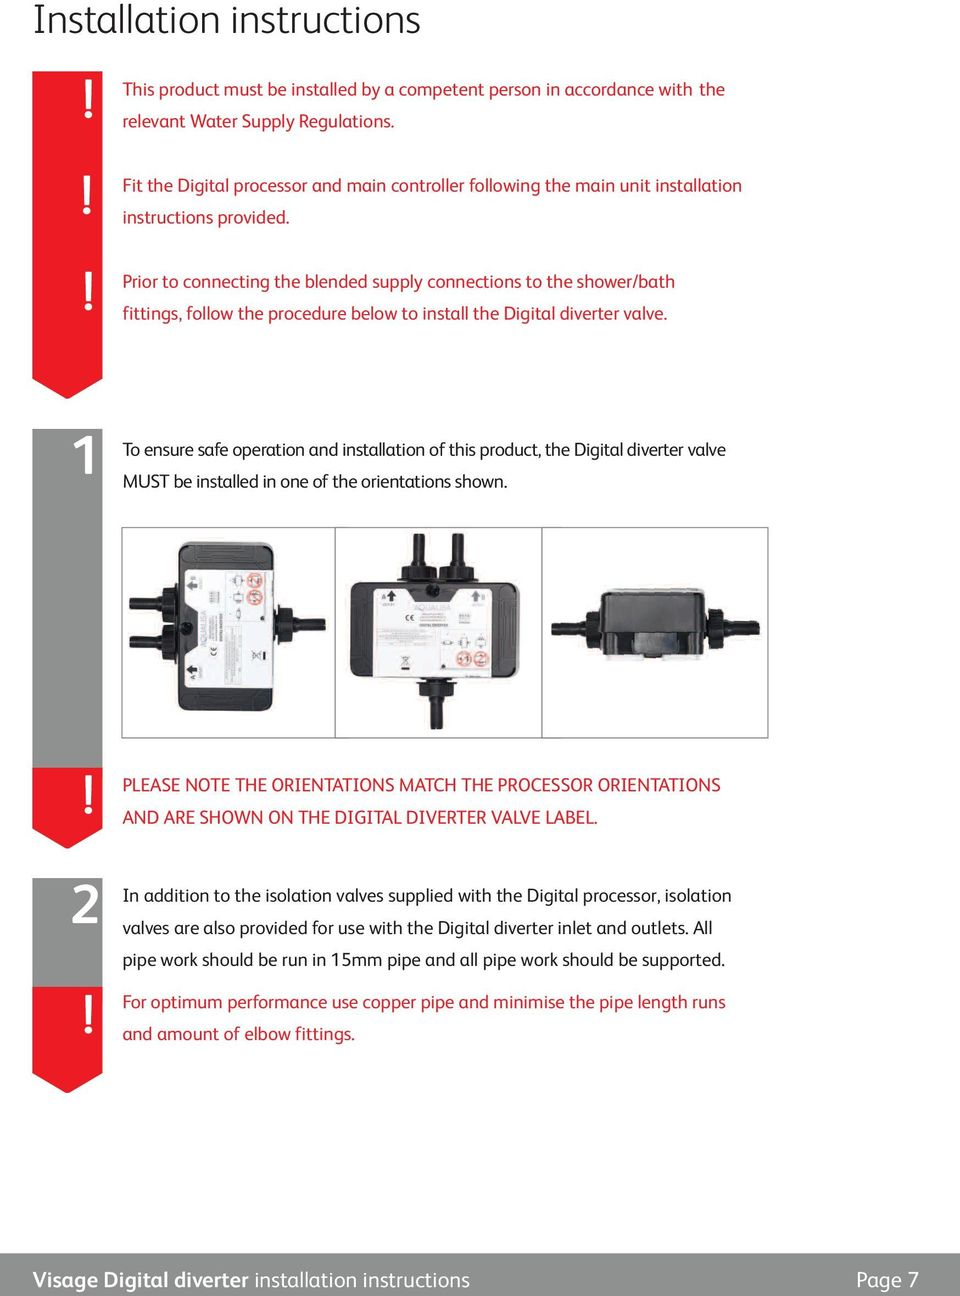 Prior to connecting the blended supply connections to the shower/bath fittings, follow the procedure below to install the Digital diverter valve.